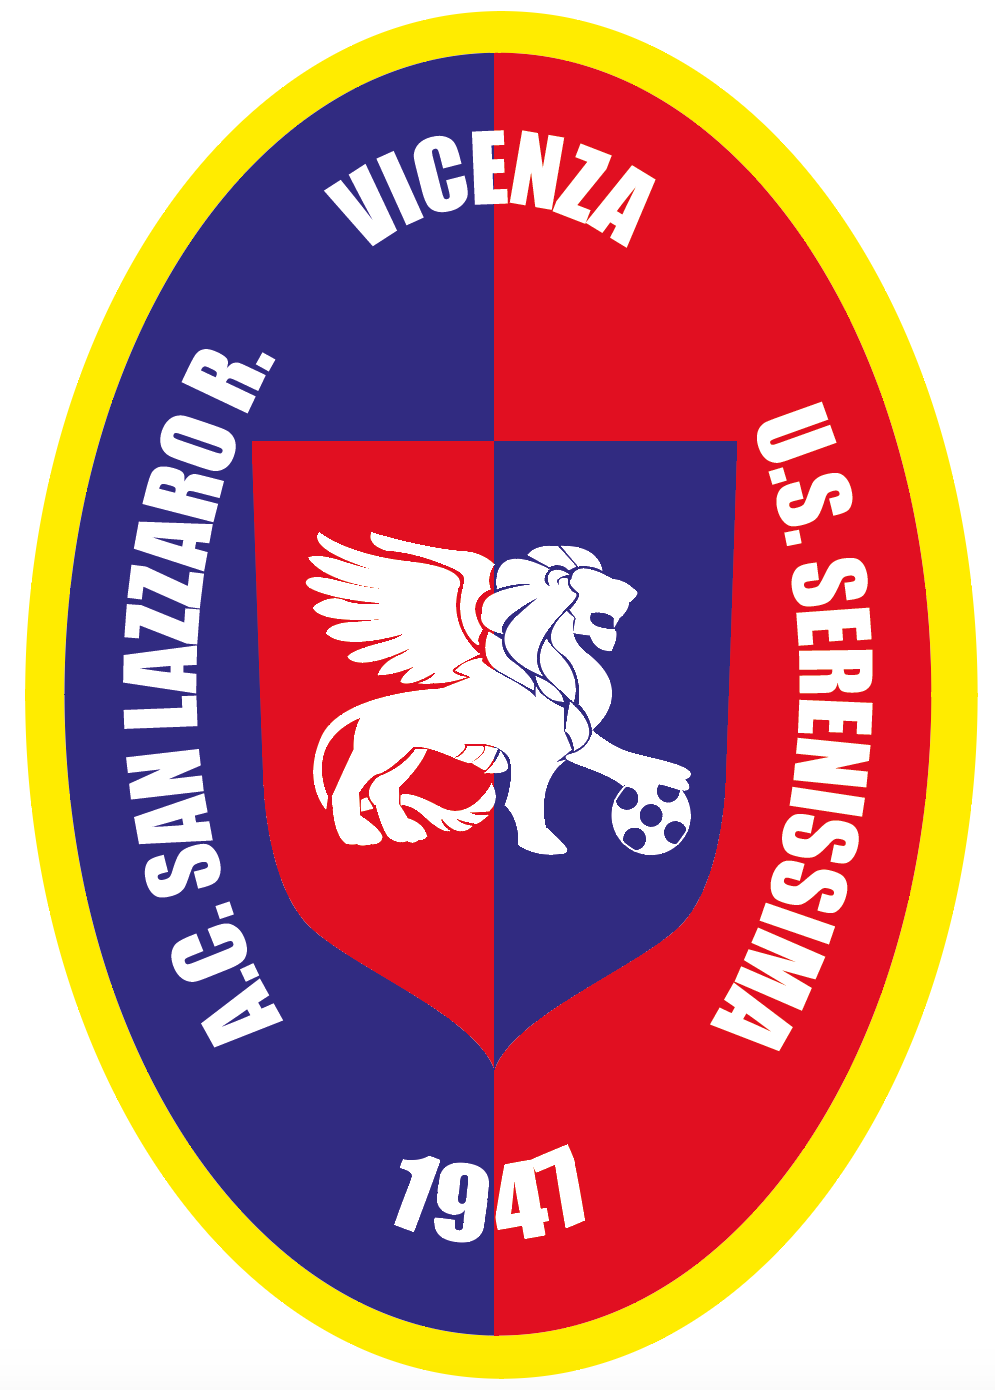 https://www.sanlazzaroserenissimavicenza.it/foto/grandi/logosanlazzaro.png